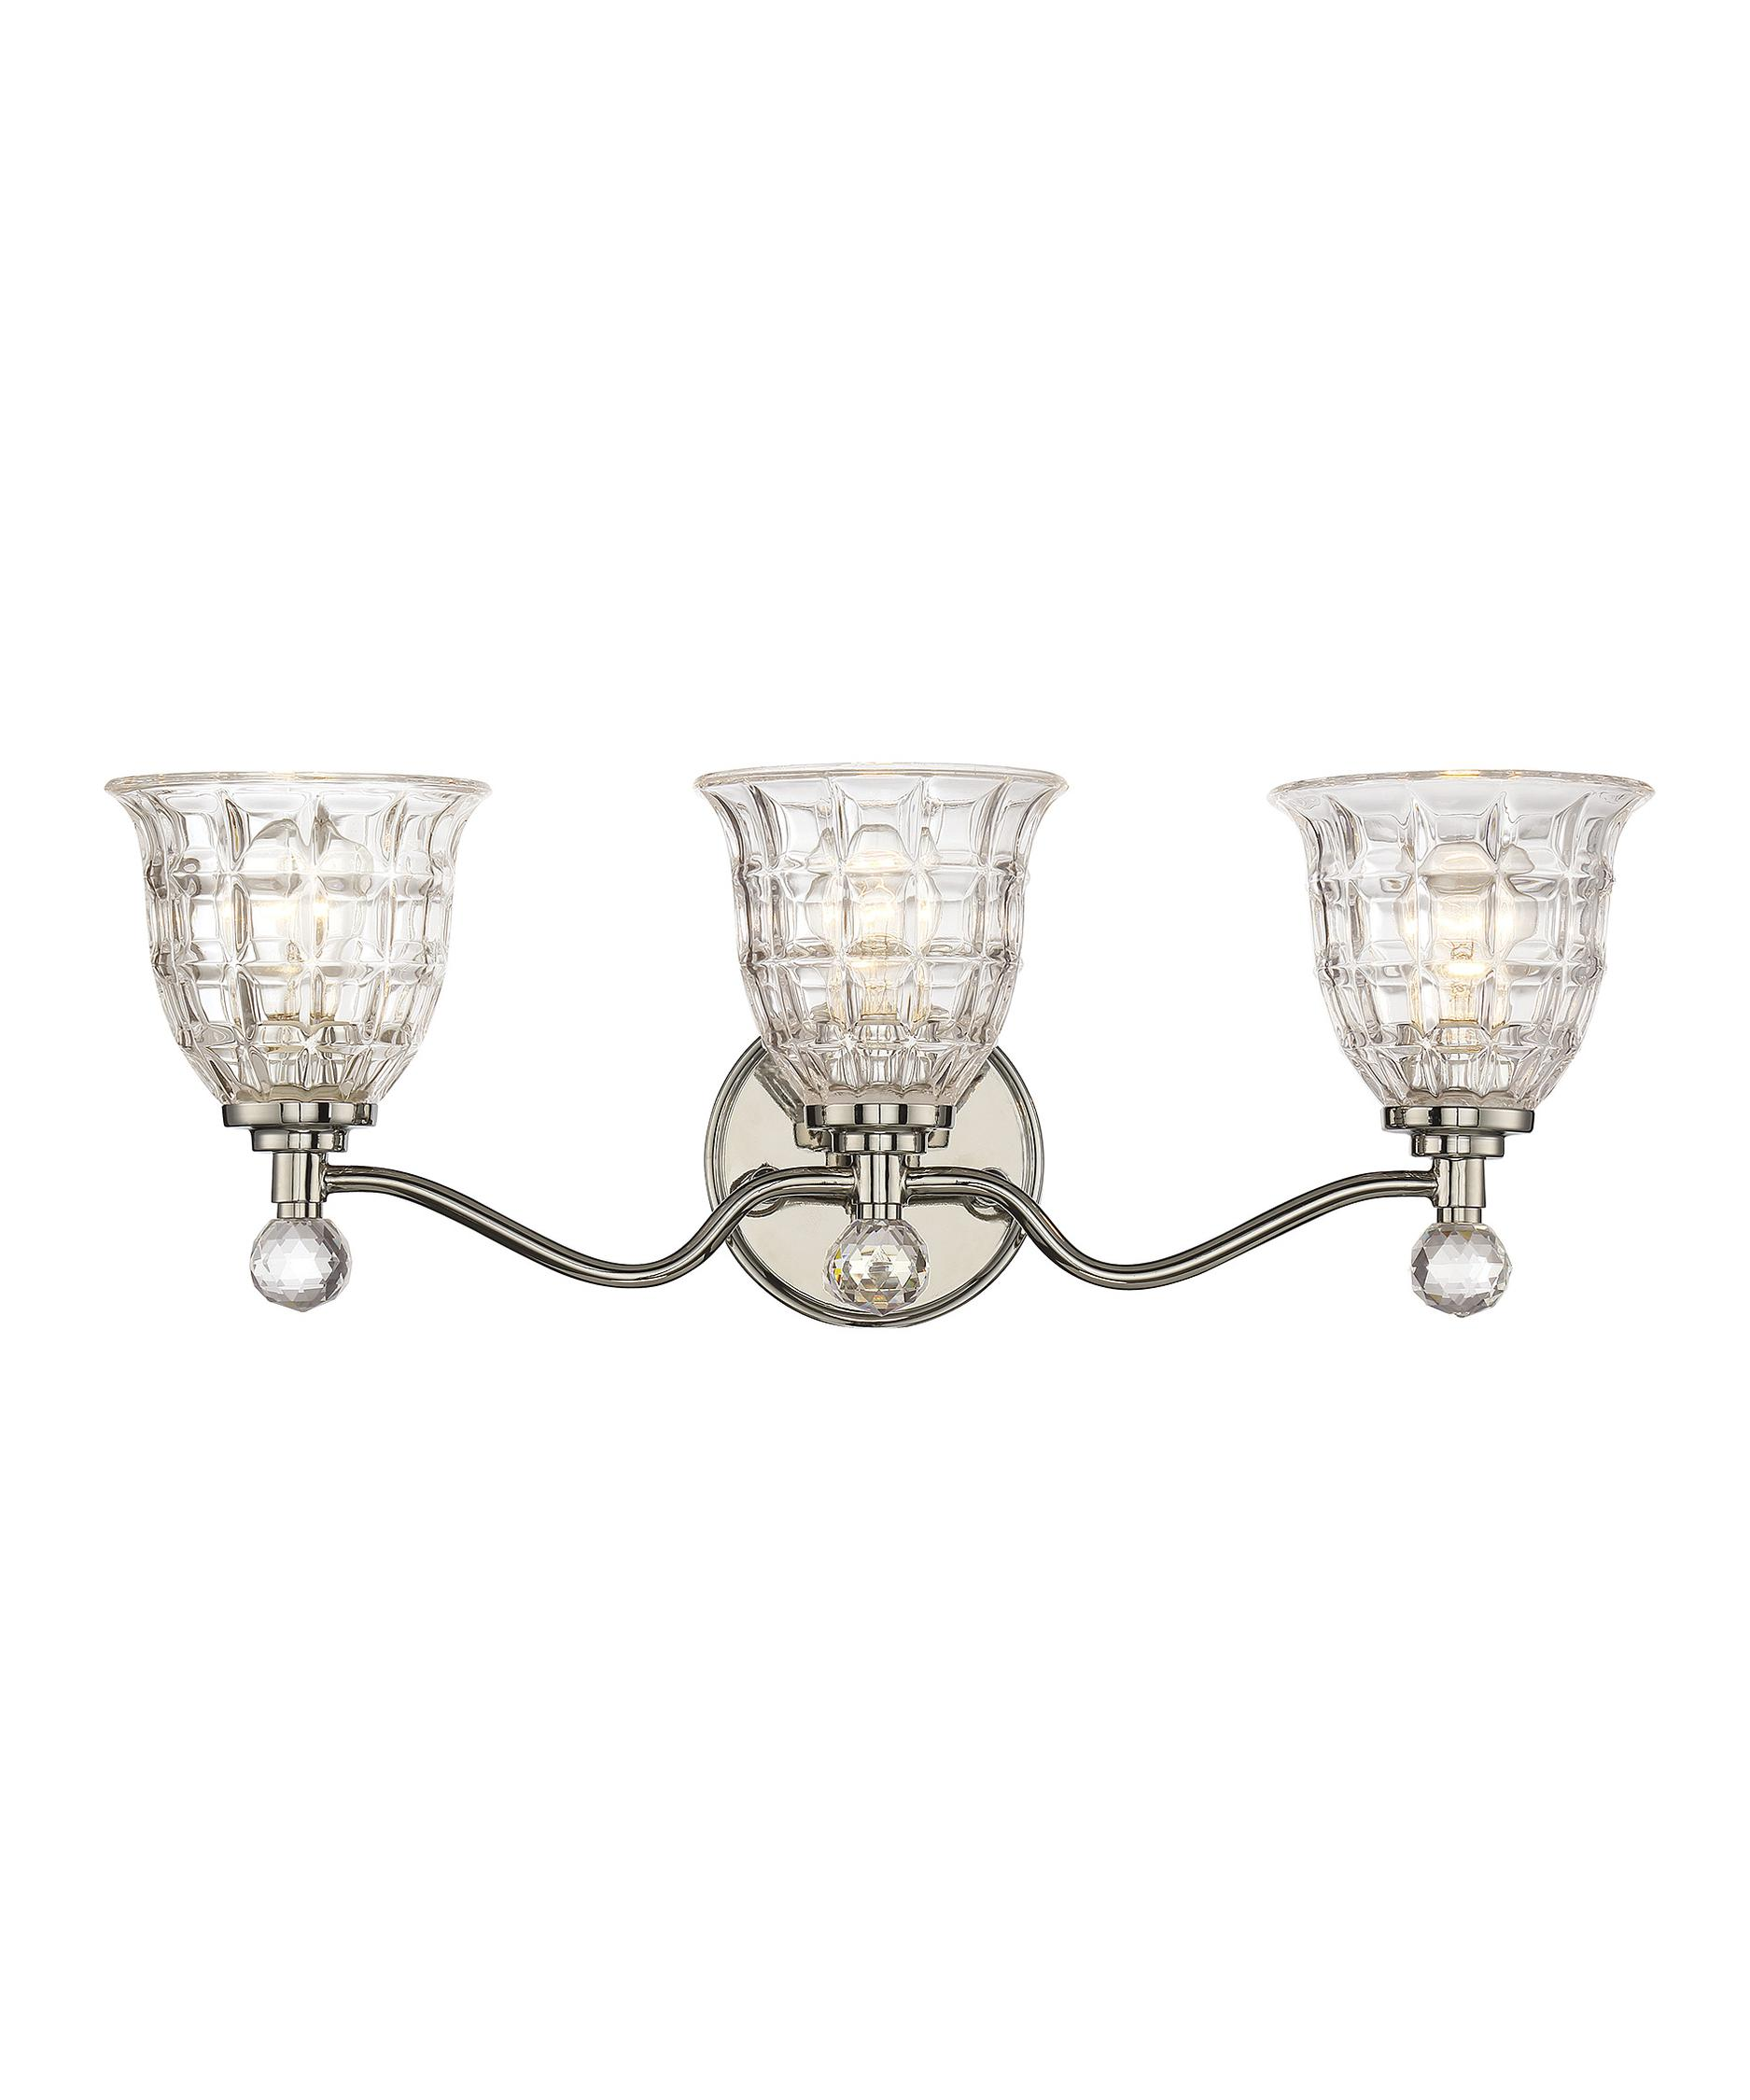 Bathroom Lighting Fixtures Polished Nickel savoy house 8-880-3-109 birone 24 inch wide bath vanity light